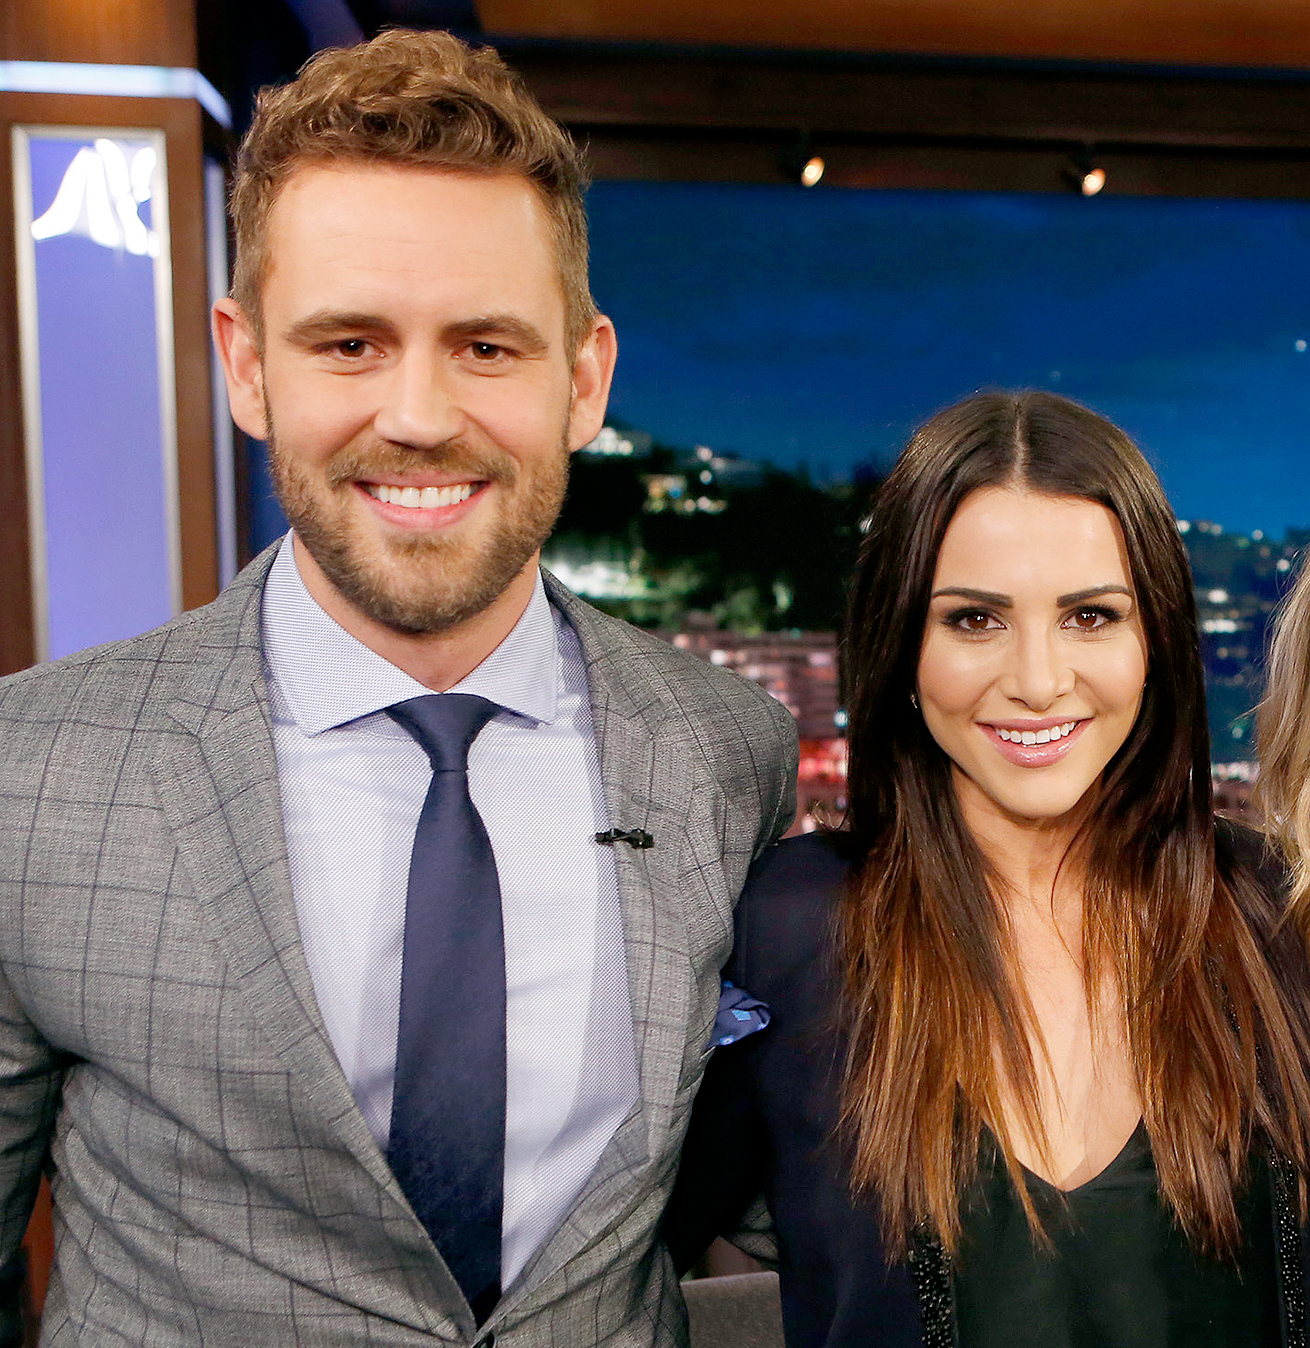 Nick Viall and Andi Dorfman